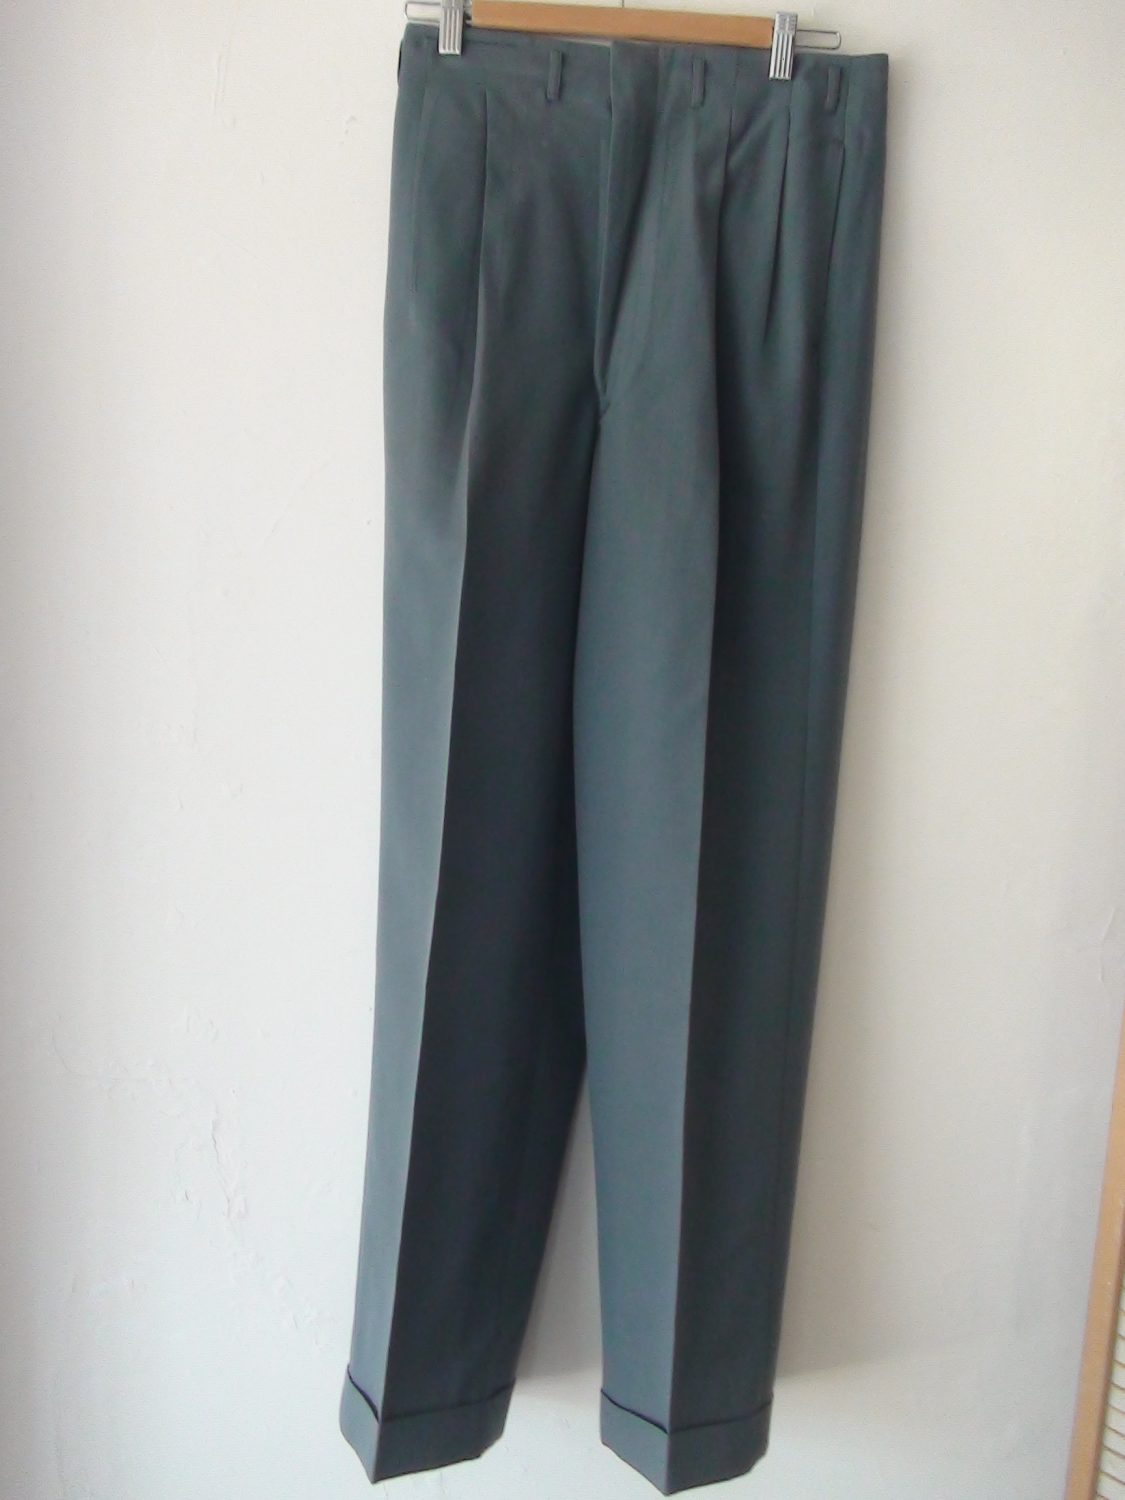 0dd4eb74 ORIGINAL 1940S MEN'S PANTS W 29 X 32